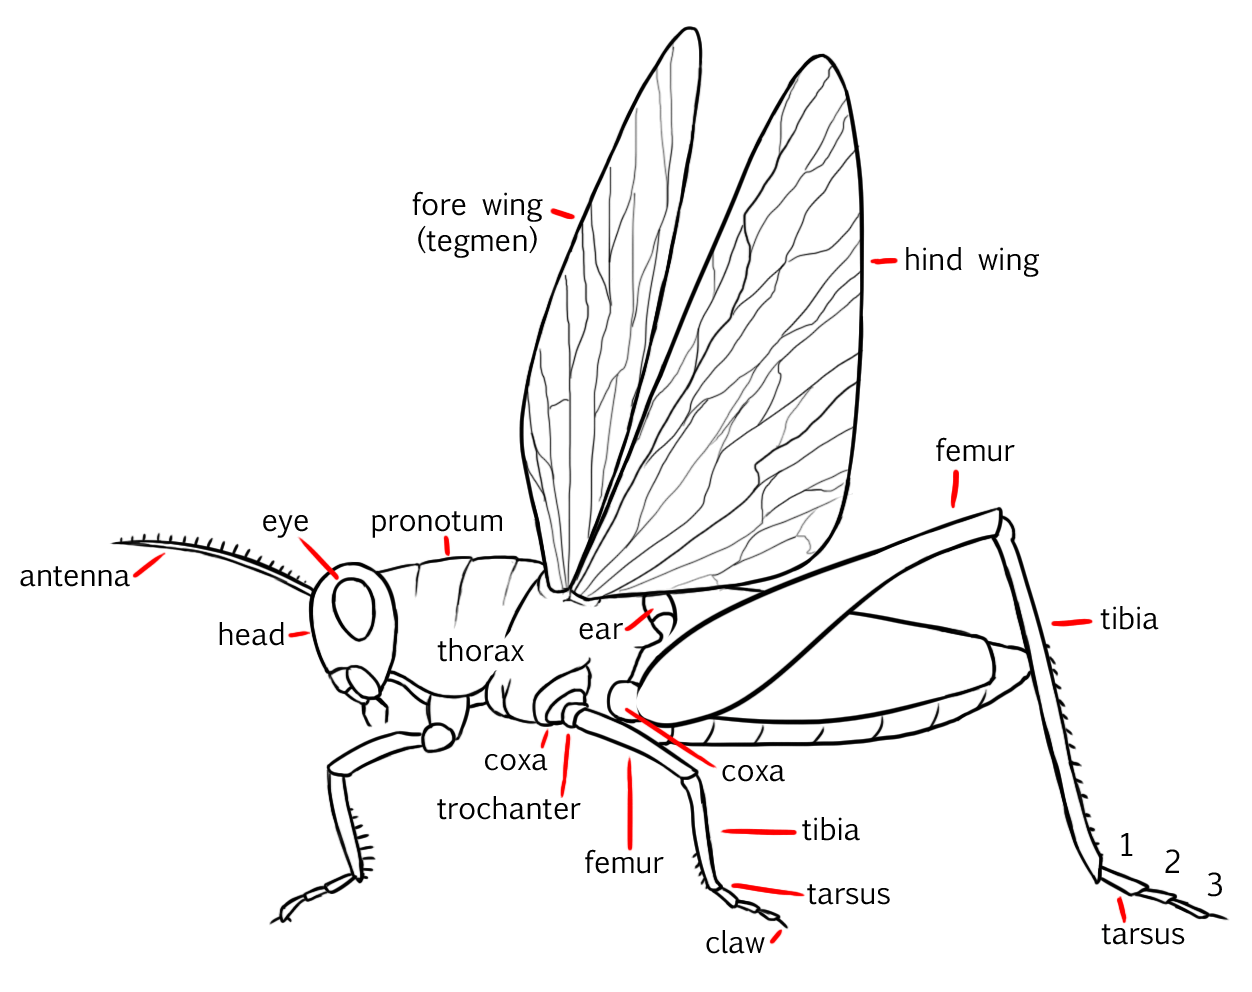 A Diagram Of Insecta